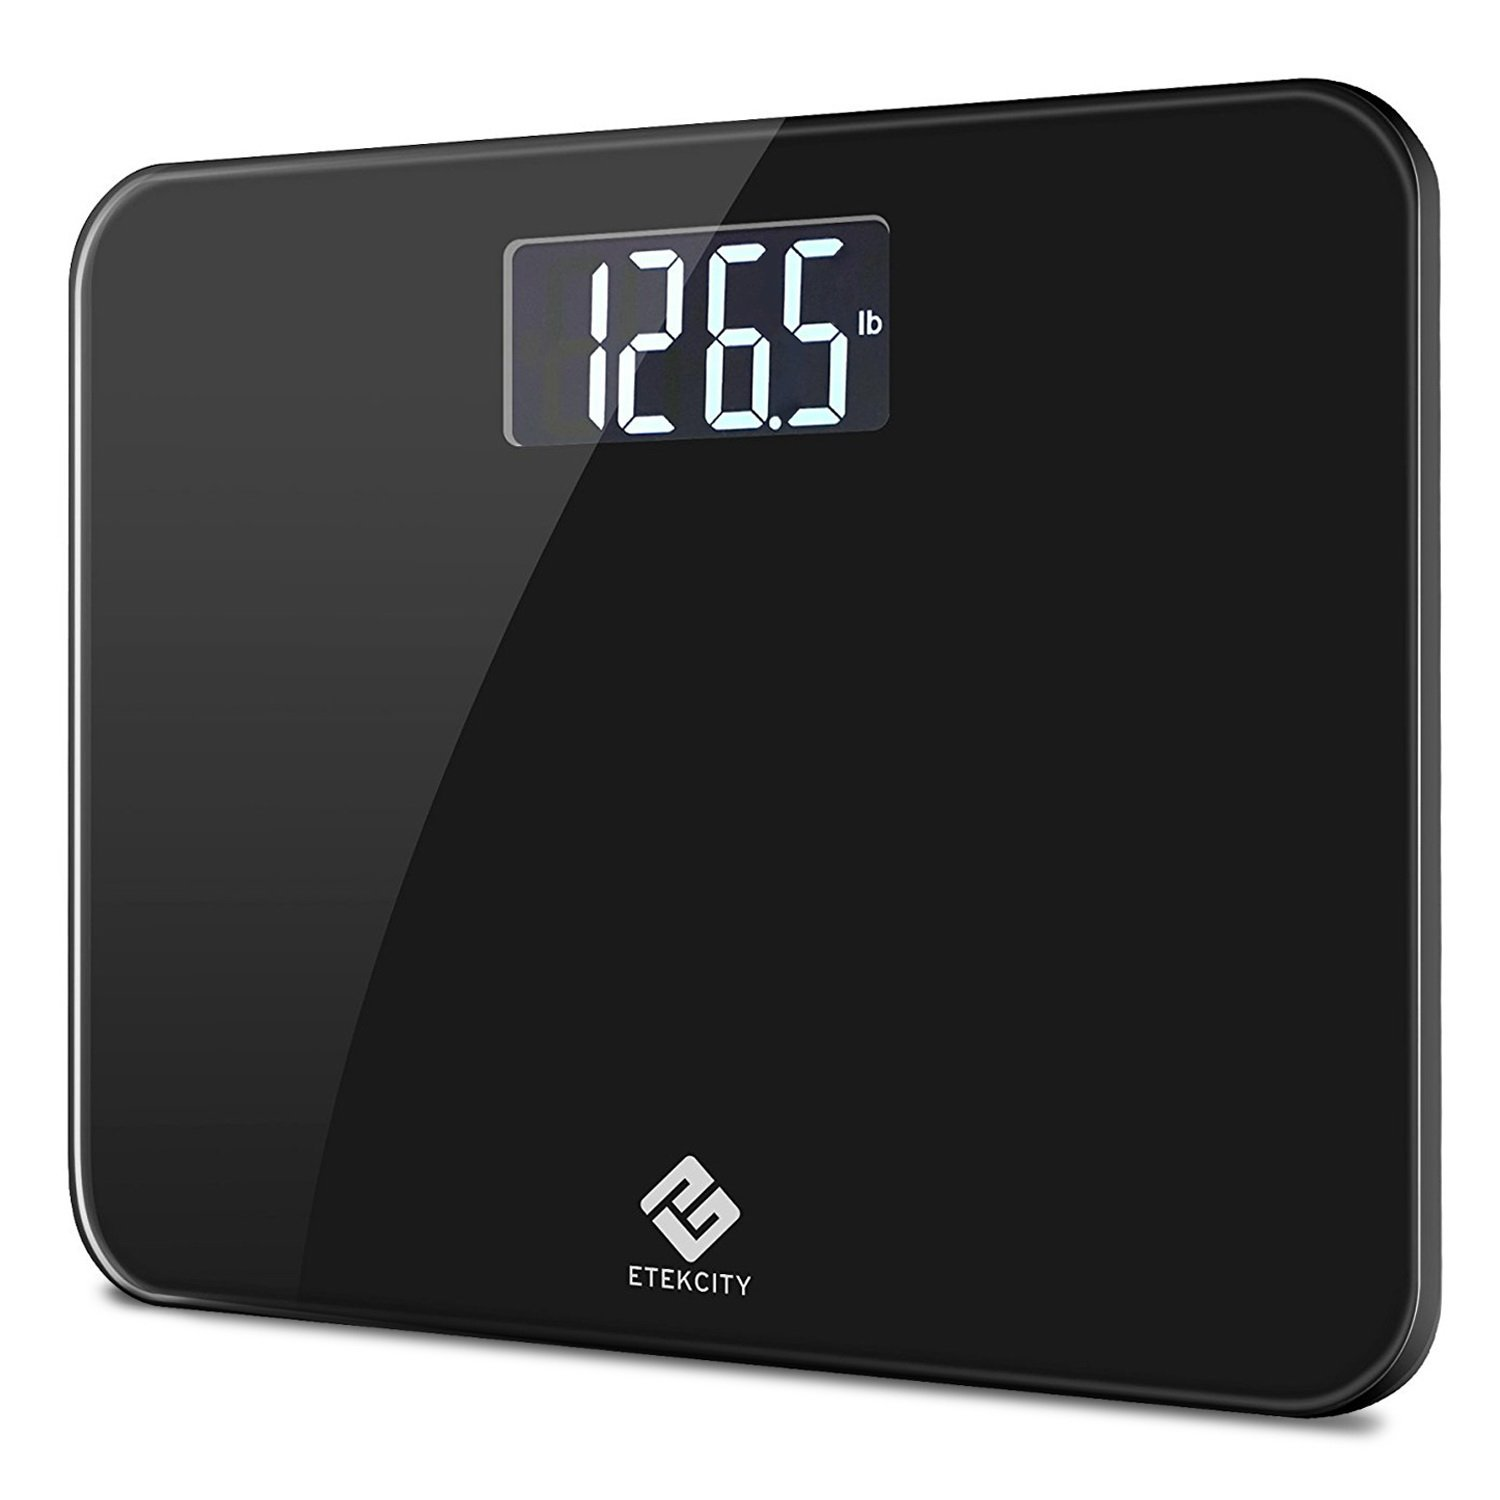 Etekcity High Precision Digital Body Weight Bathroom Scale with Ultra Wide Platform and Easy-to-Read Backlit LCD, 440 Pounds by Etekcity